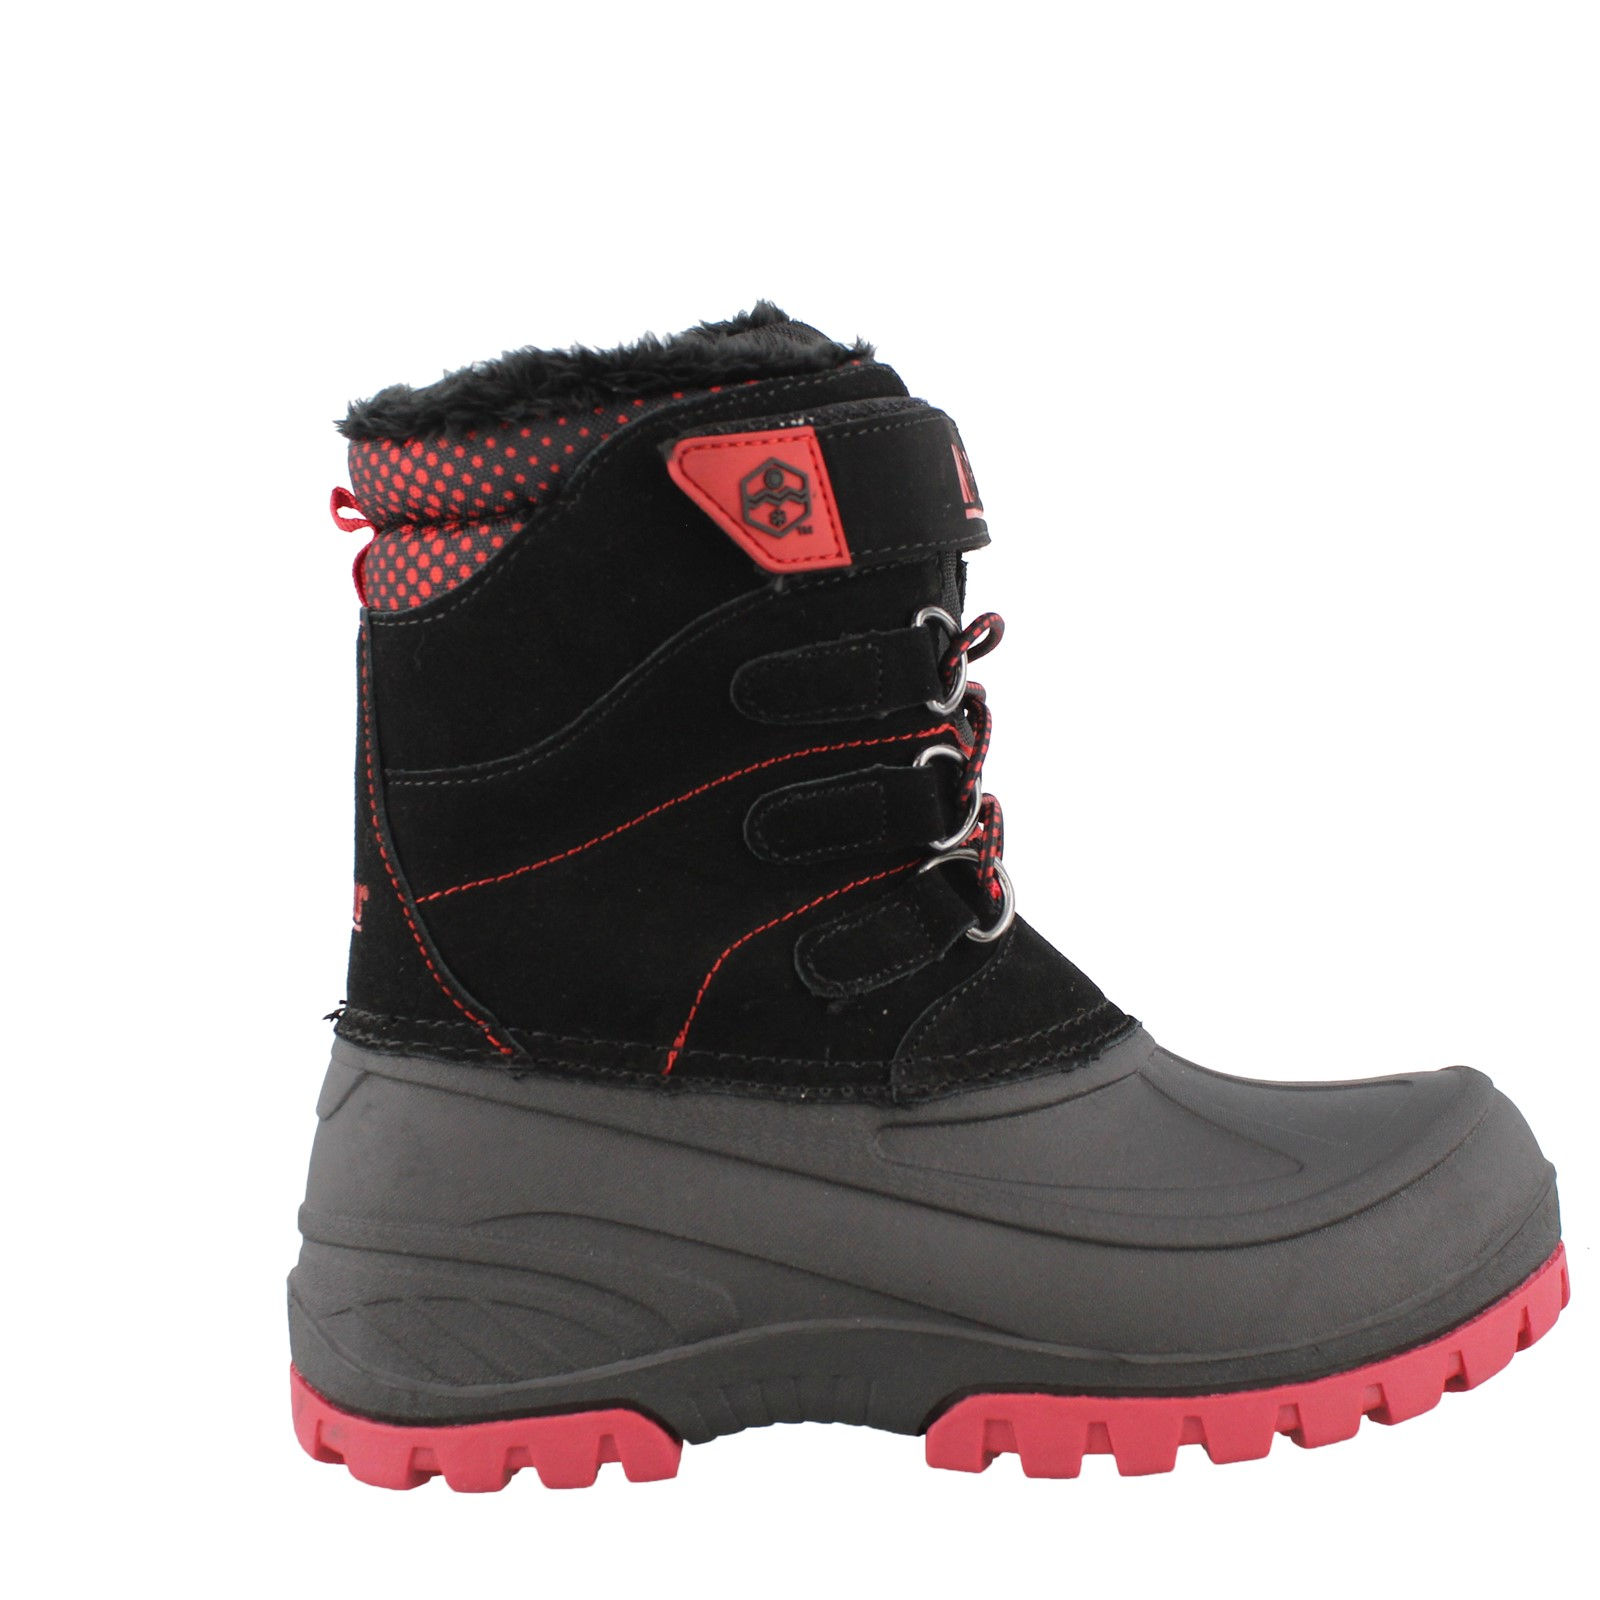 Boy's Khombu, Hickory Winter Boot - Little Kid & Big Kid